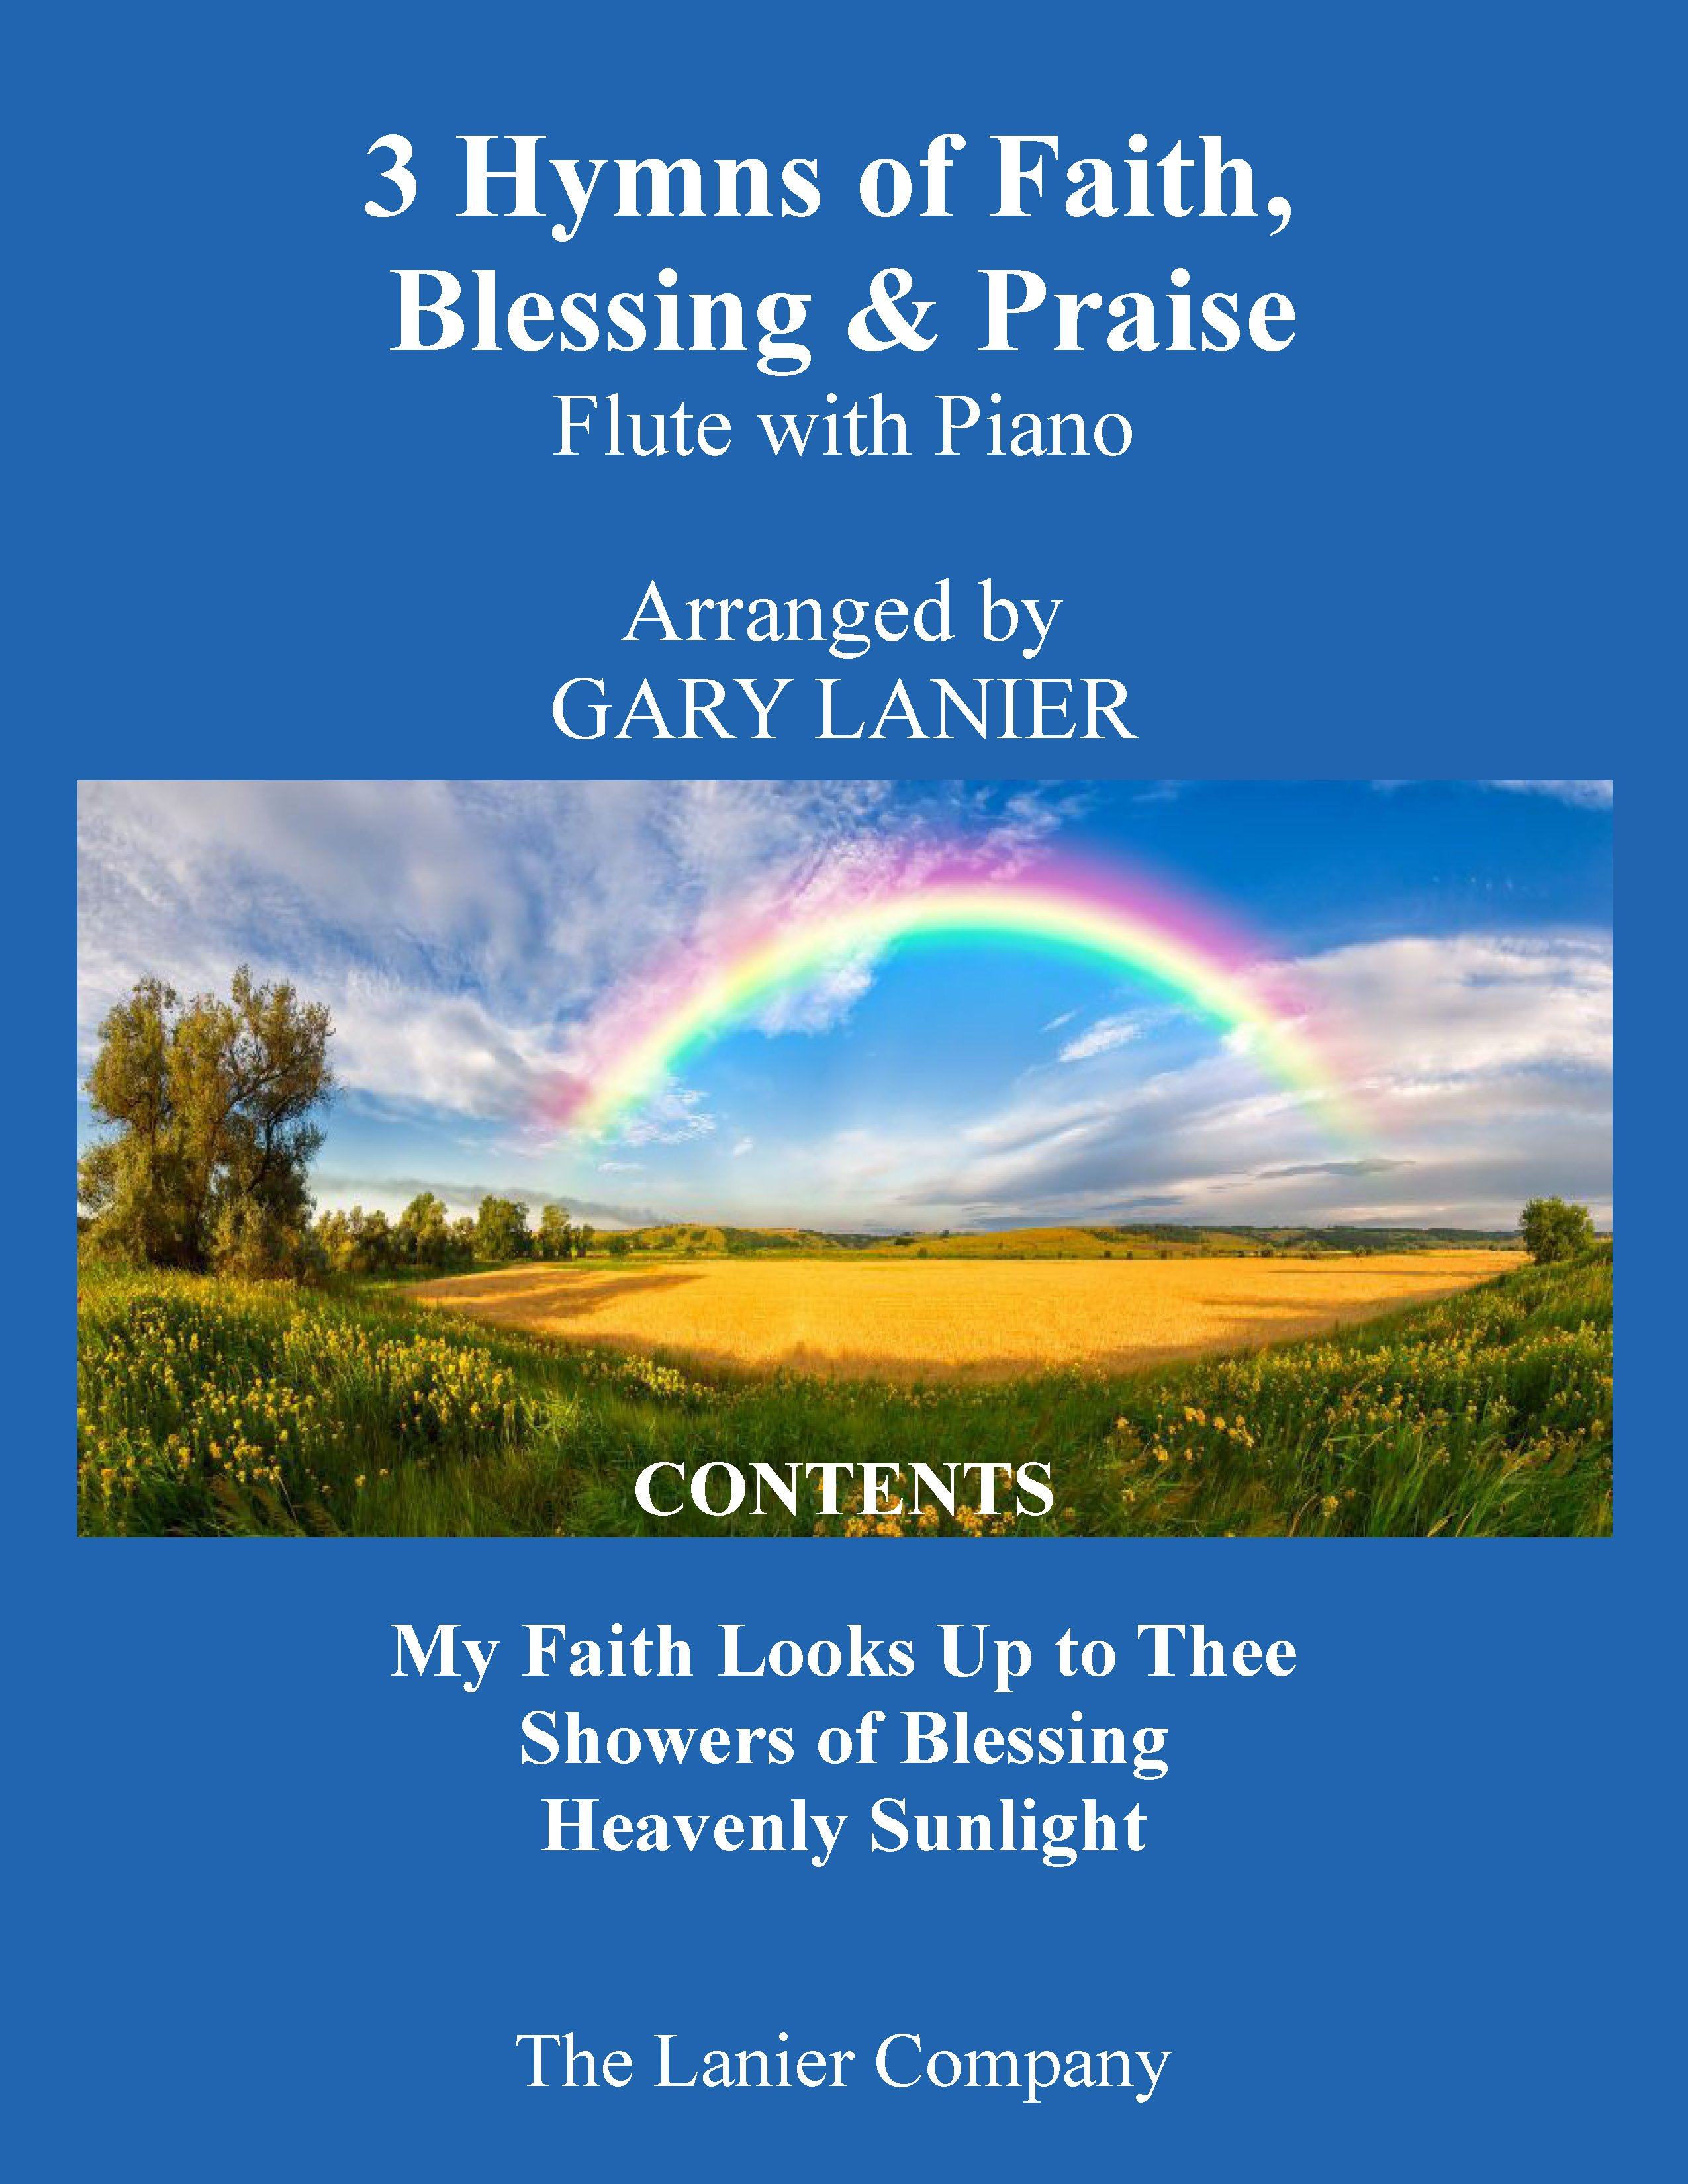 Three Hymns of Faith, Blessing & Praise (For Flute with Piano)